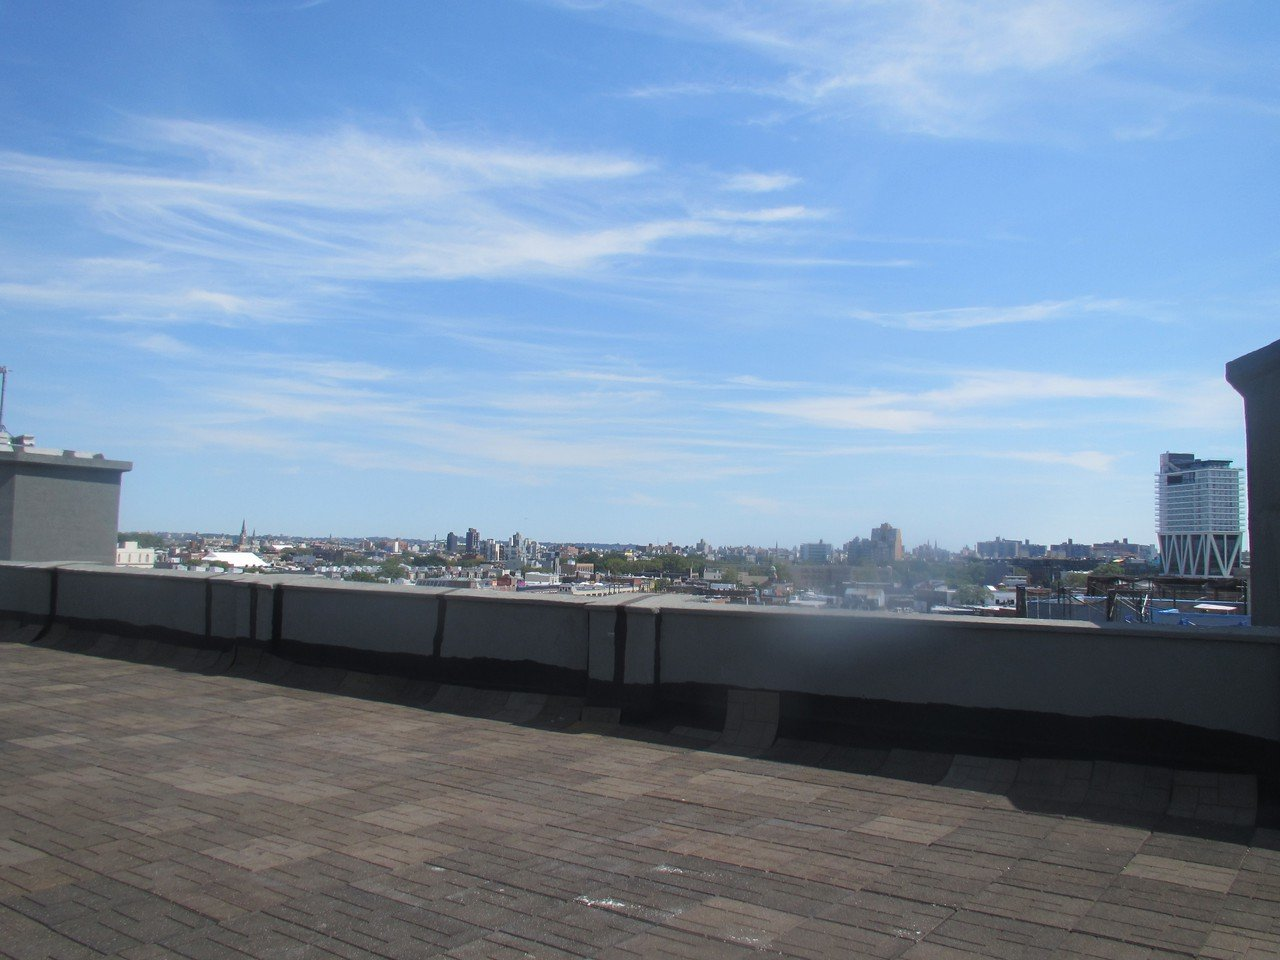 NYC corporate event venues Dachterrasse Seret Studios - Green Point Rooftop image 0